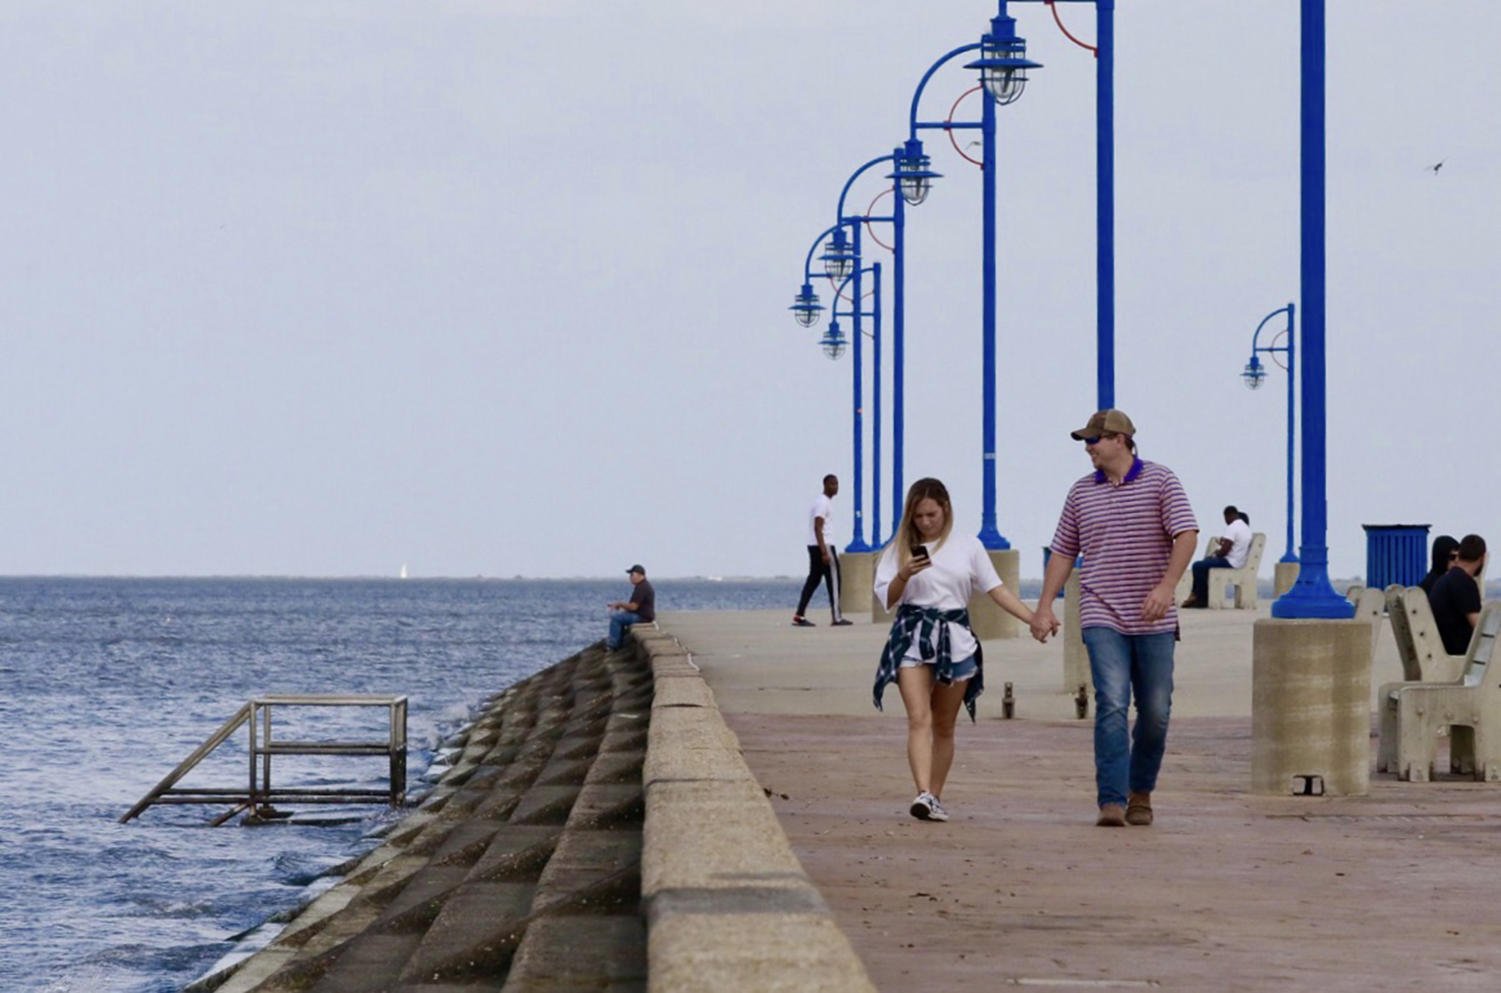 A couple strolls along the sidewalk by Lake Pontchartrain. The site is frequented by residents for its natural beauty. Photo credit: Andres Fuentes